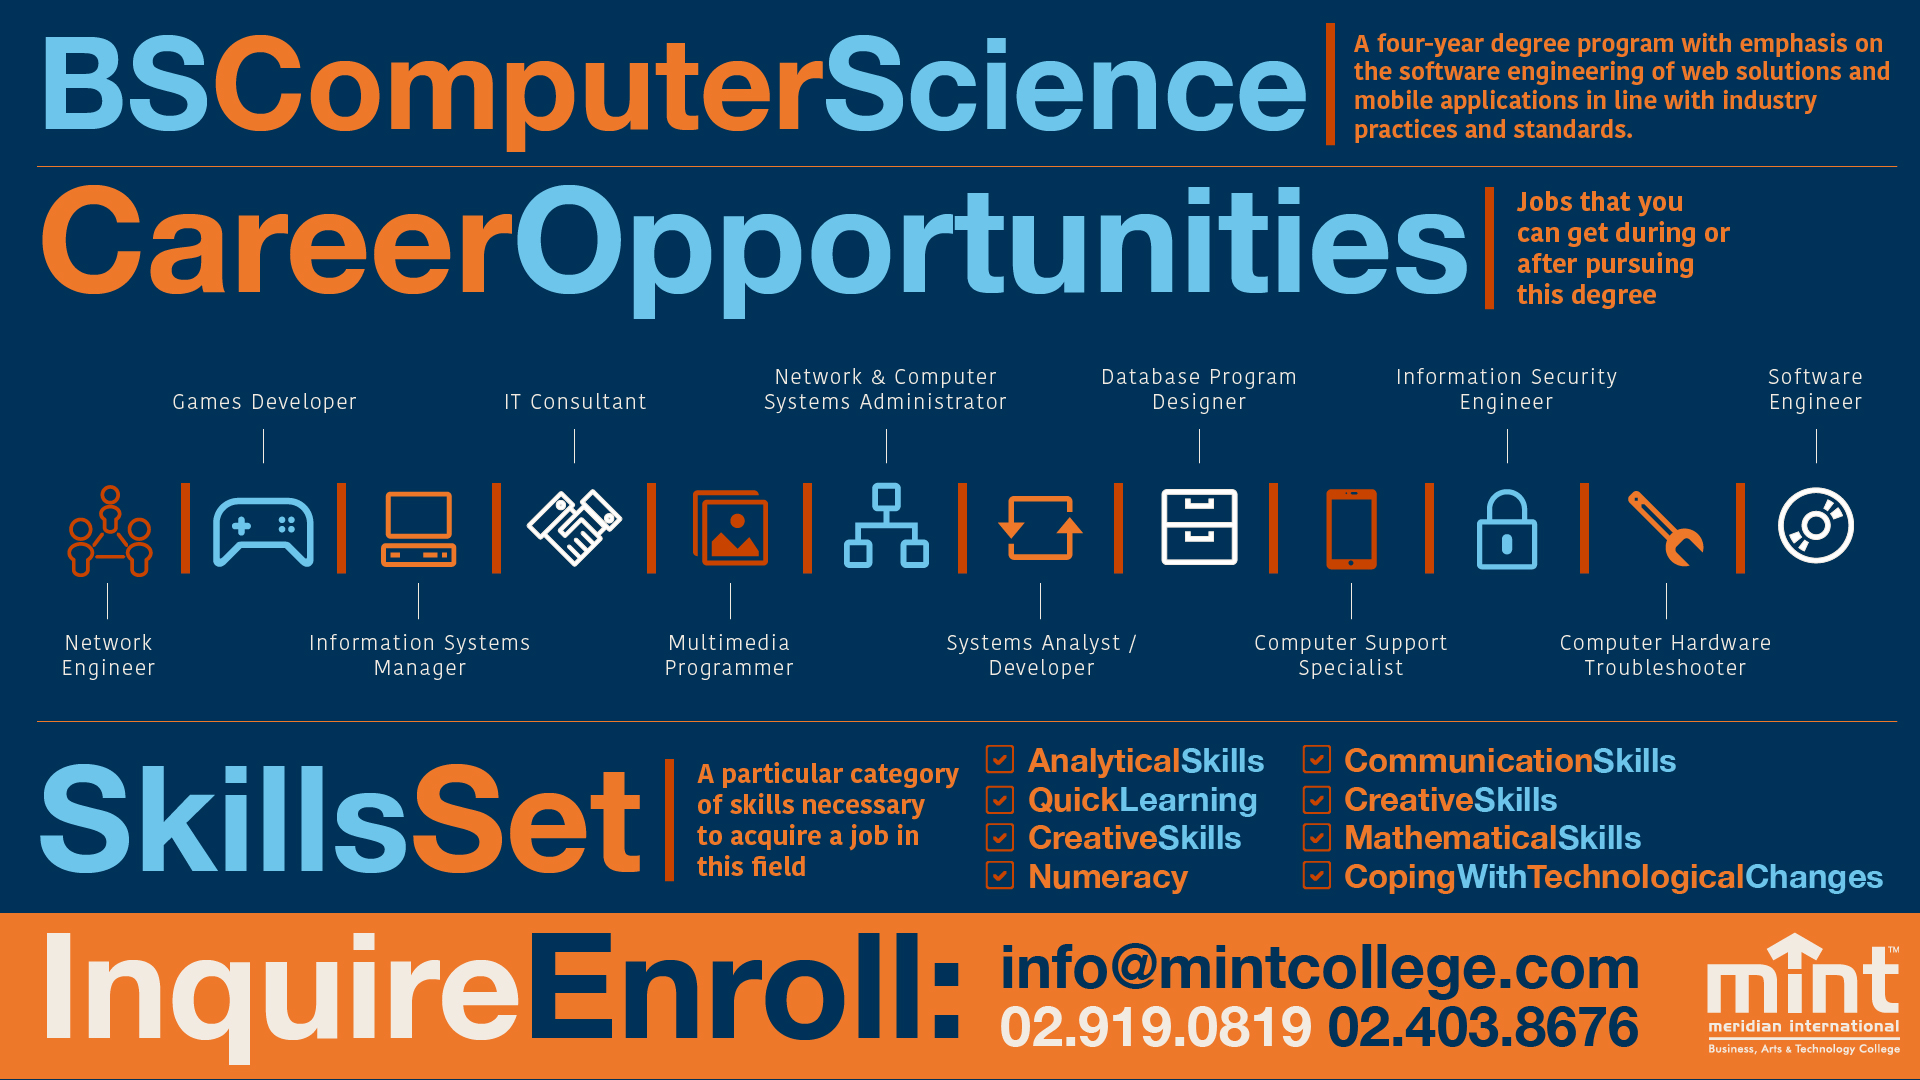 Thinking of a career in information technology? Check out this infographic for career opportunities. For more information on MINT's program offerings, go to   www.mintcollege.com  , Programs section.